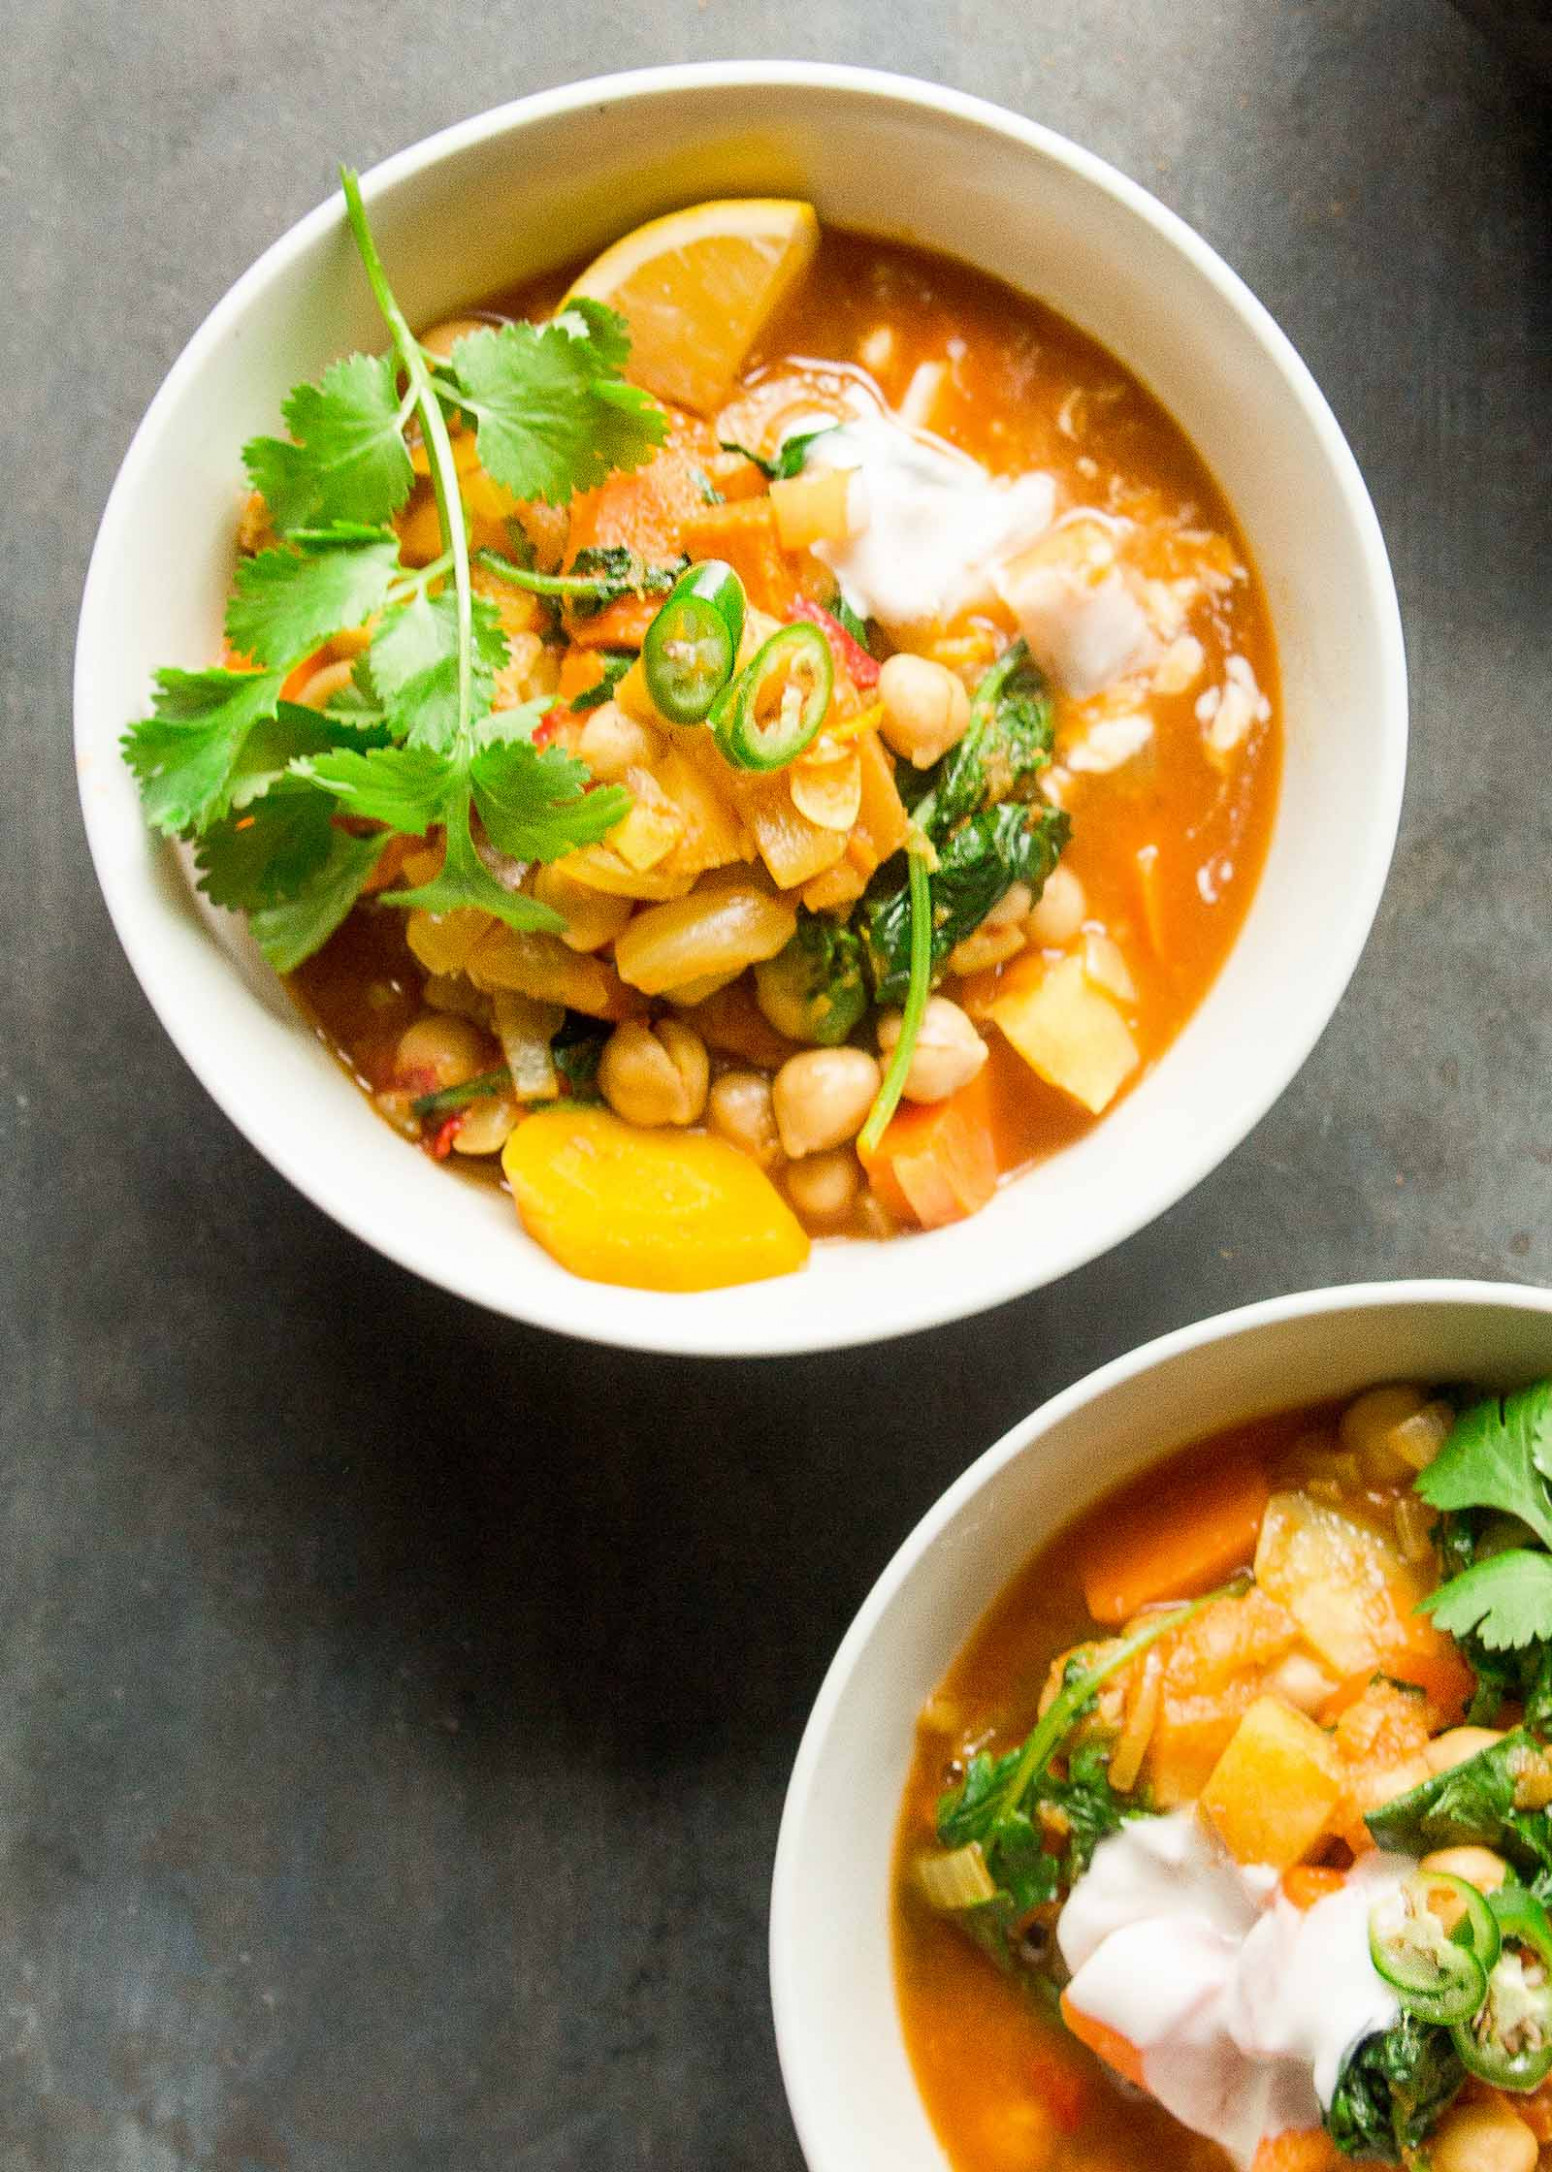 Moroccan-Spiced Sweet Potato and Chickpea Stew - recipes using ras el hanout vegetarian